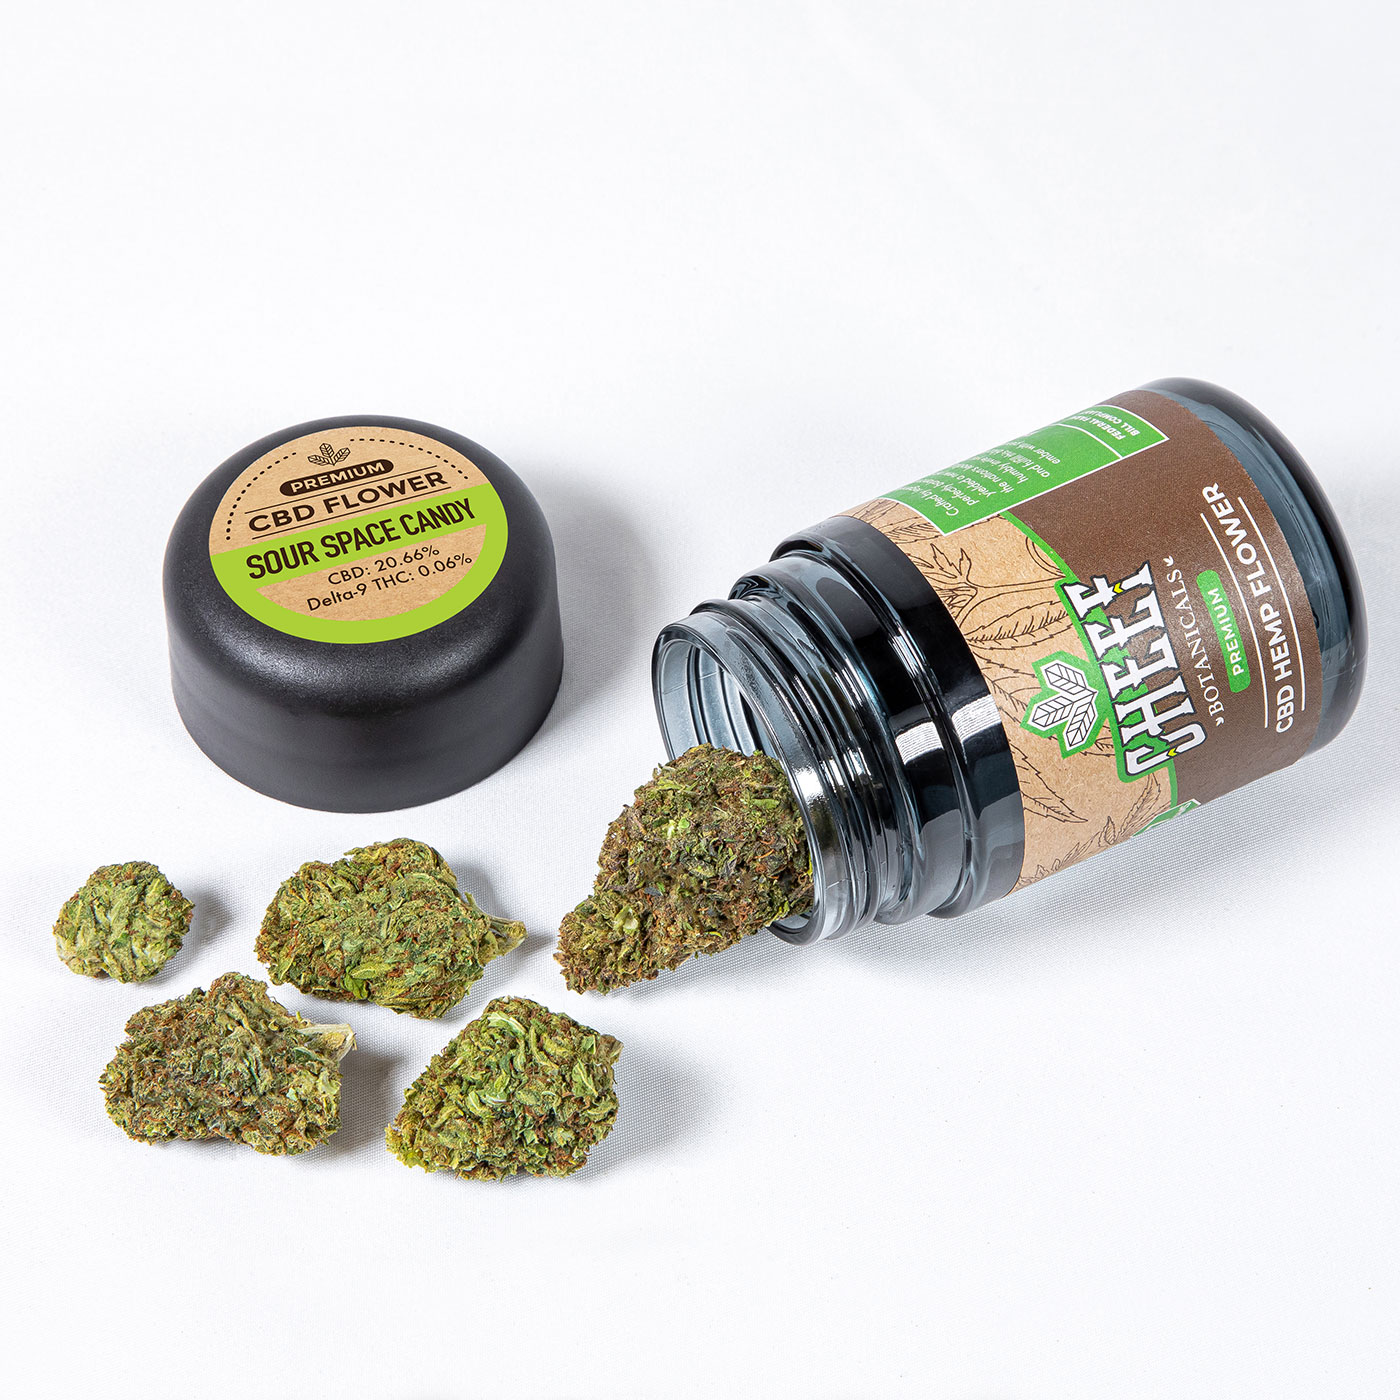 sour space candy cbd flower with jar